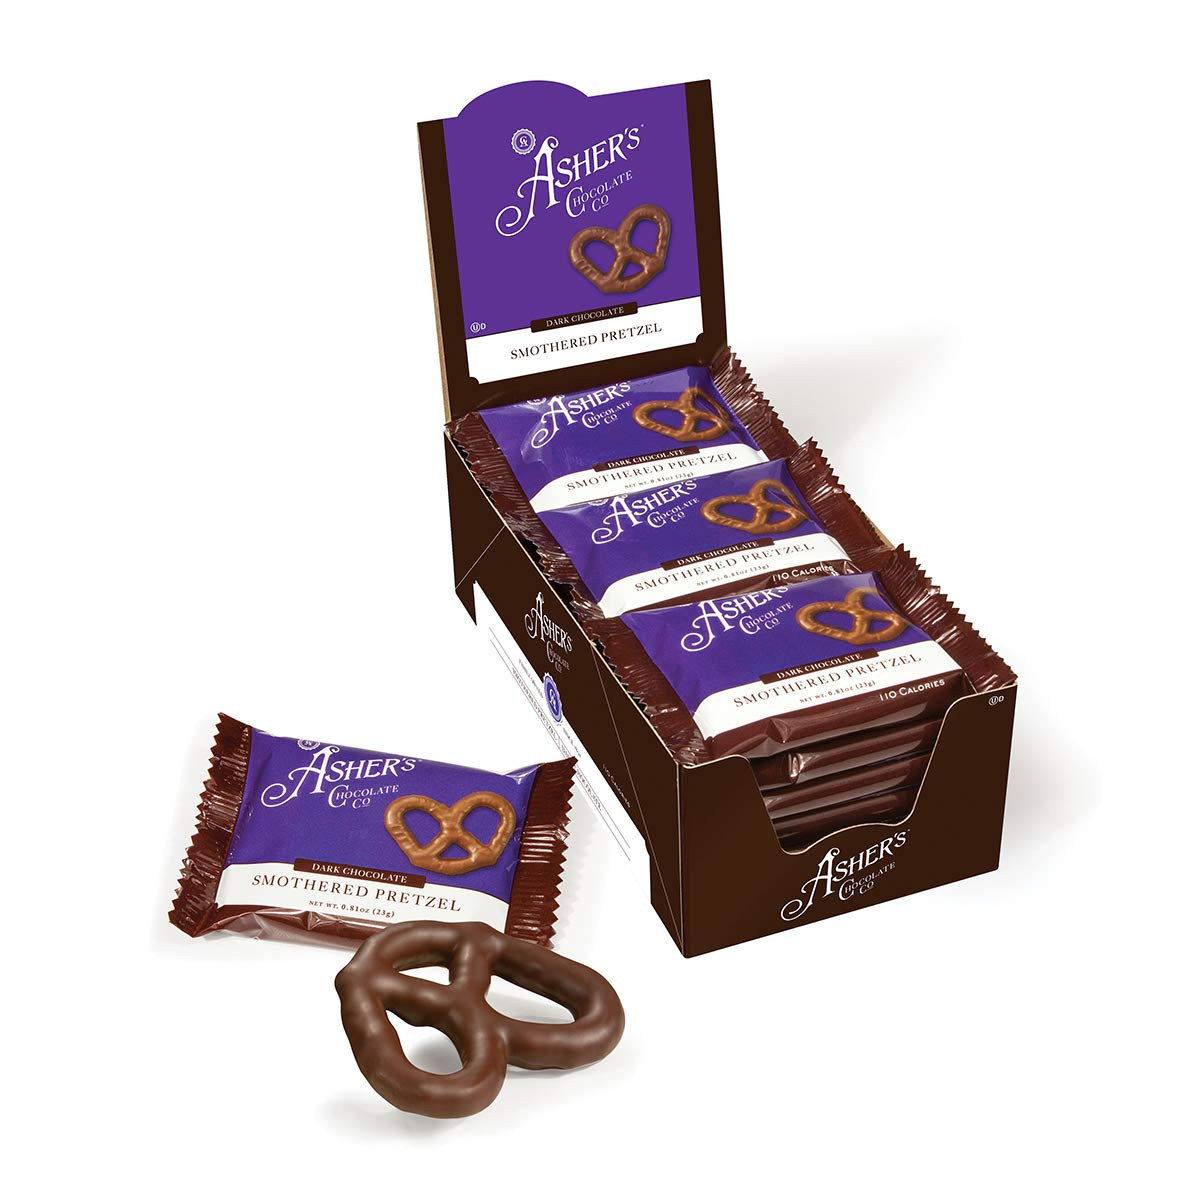 Asher's Chocolate, Chocolate Covered Pretzels, Gourmet Sweet and Salty Candy, Small Batches of Kosher Chocolate, Family Owned Since 1892 (18 count, Dark Chocolate)